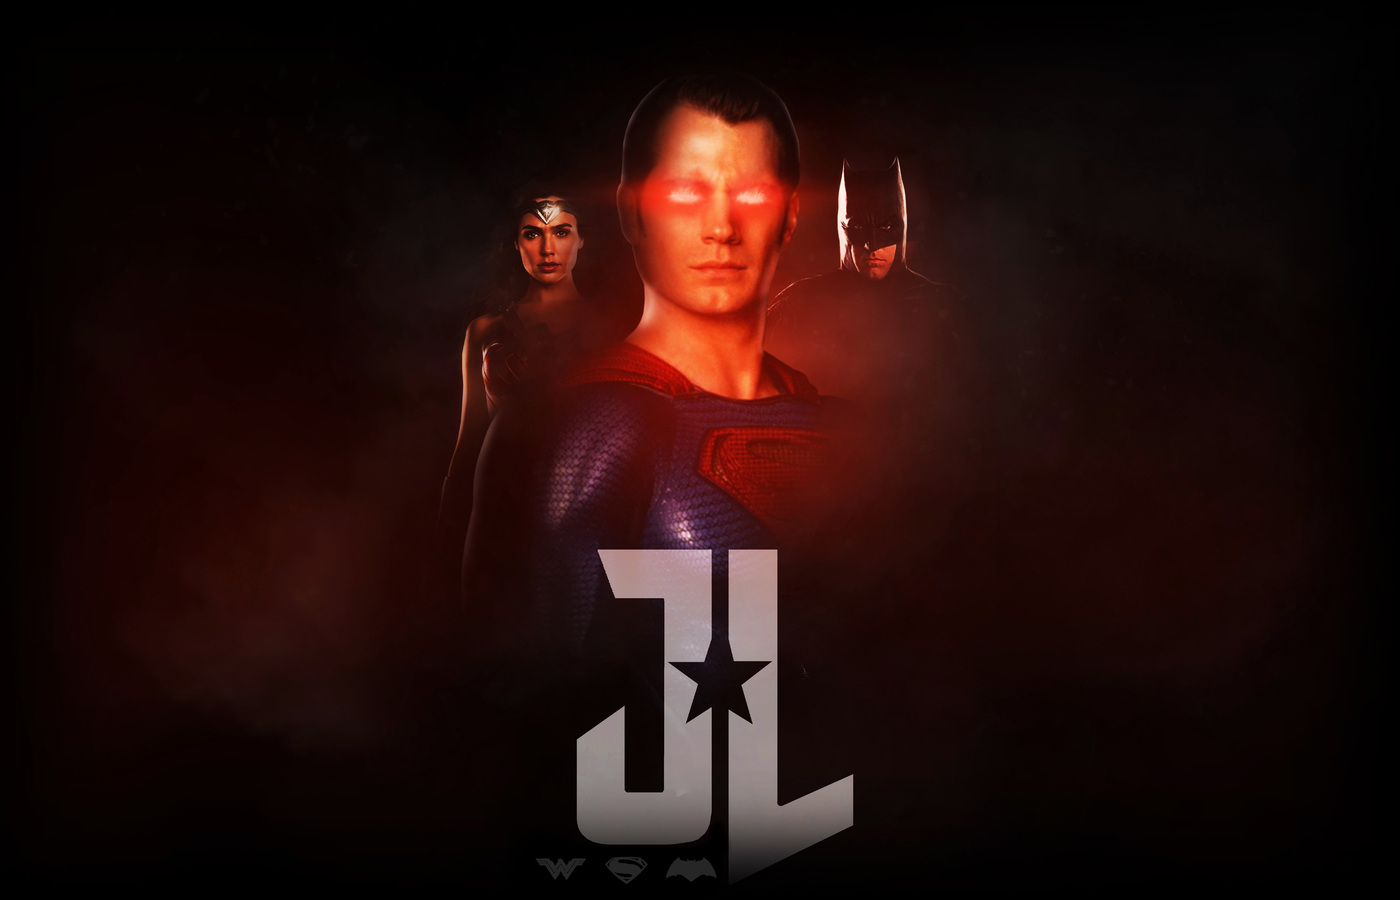 justice-league-8k-fan-art-l8.jpg